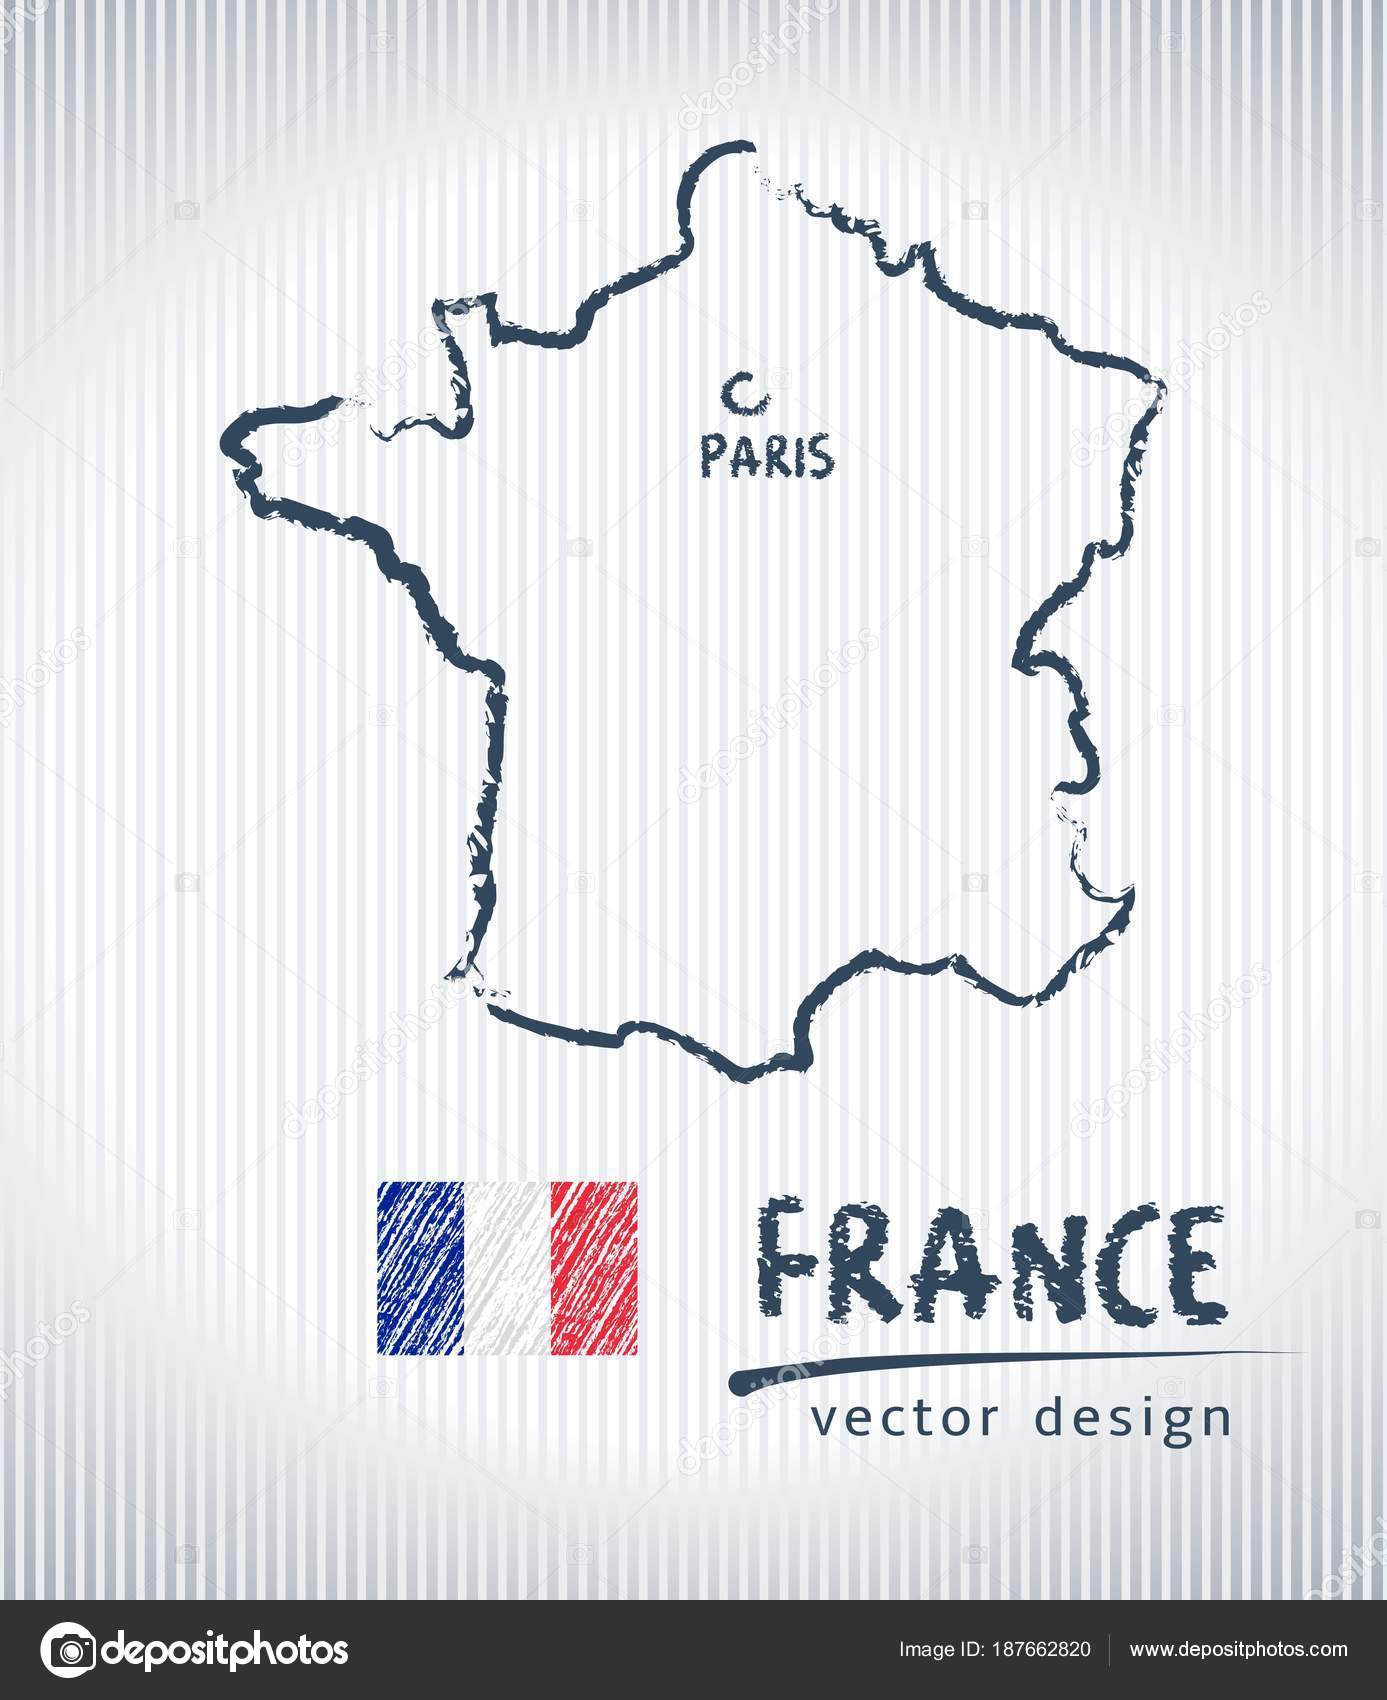 Map Of France Drawing.France Vector Chalk Drawing Map Isolated White Background